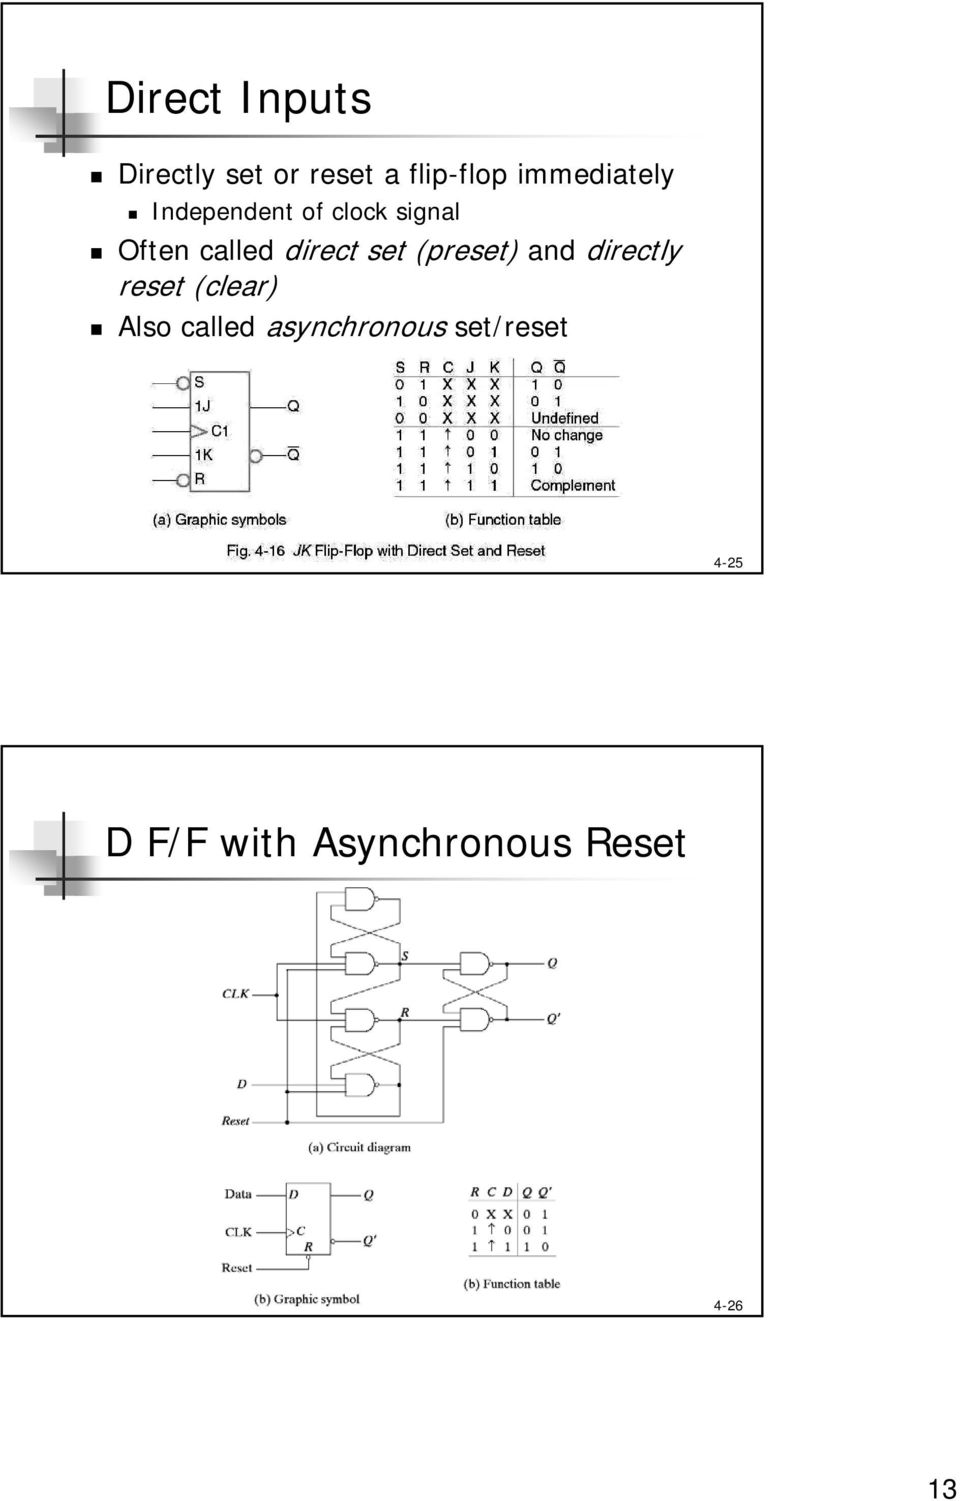 Modeling Sequential Elements With Verilog Prof Chien Nan Liu Tel Logic Diagram Of Jk Flip Flop Direct Set Preset And Directly Reset Clear Also